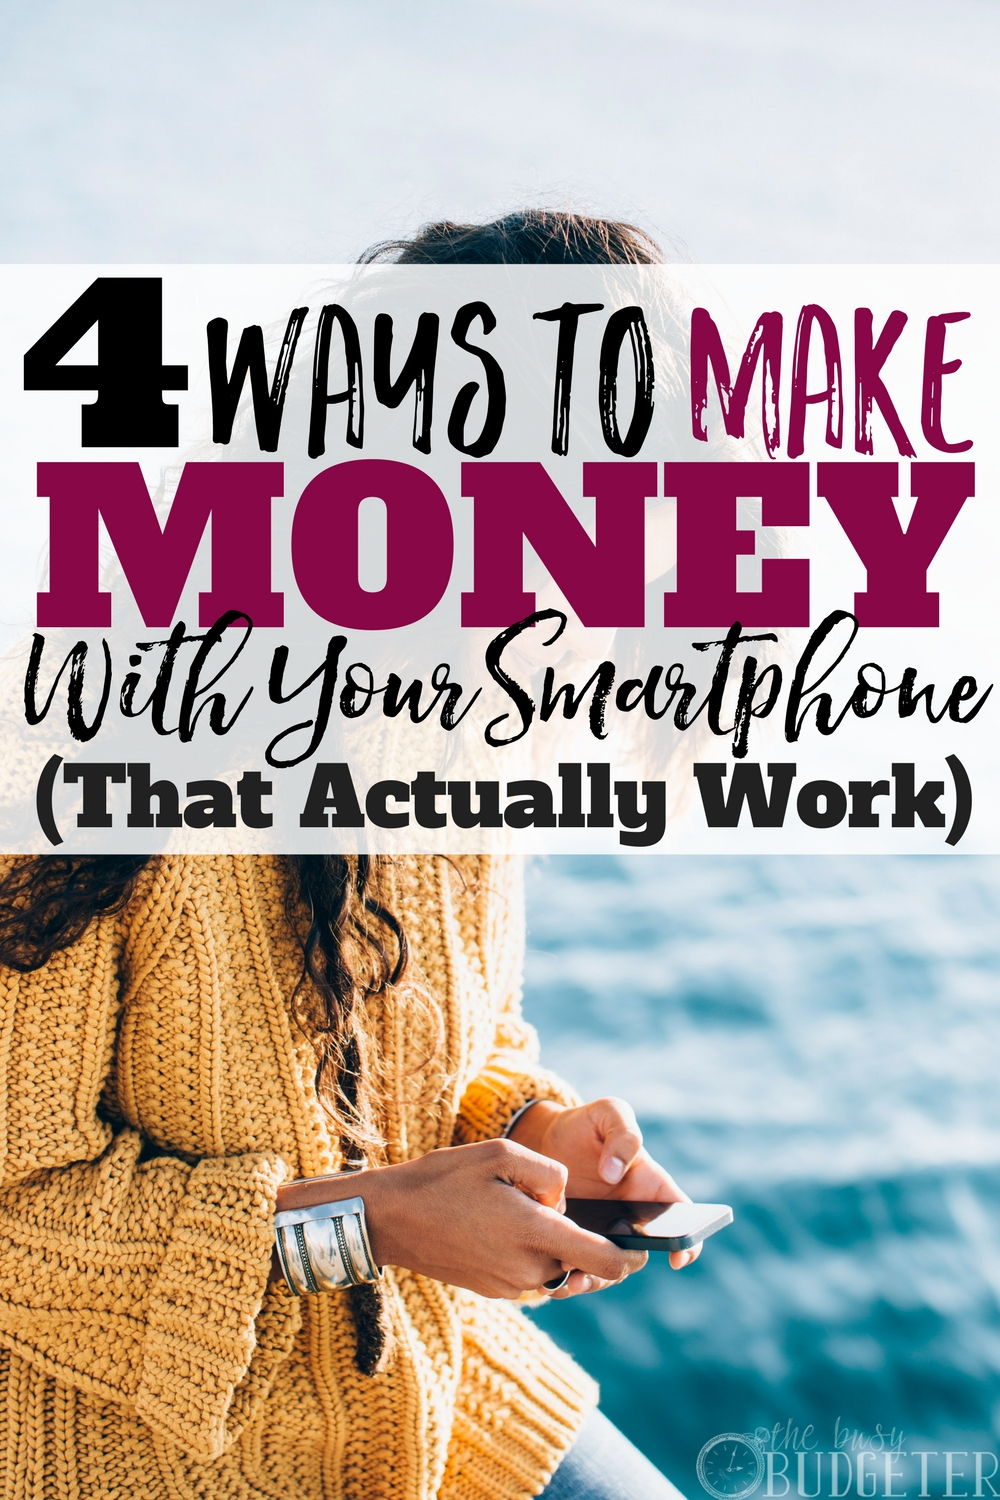 I really thought this sounded too good to be true but these ideas for making money from your smartphone actually work! Now I can actually earn money using my phone-- so easy!!